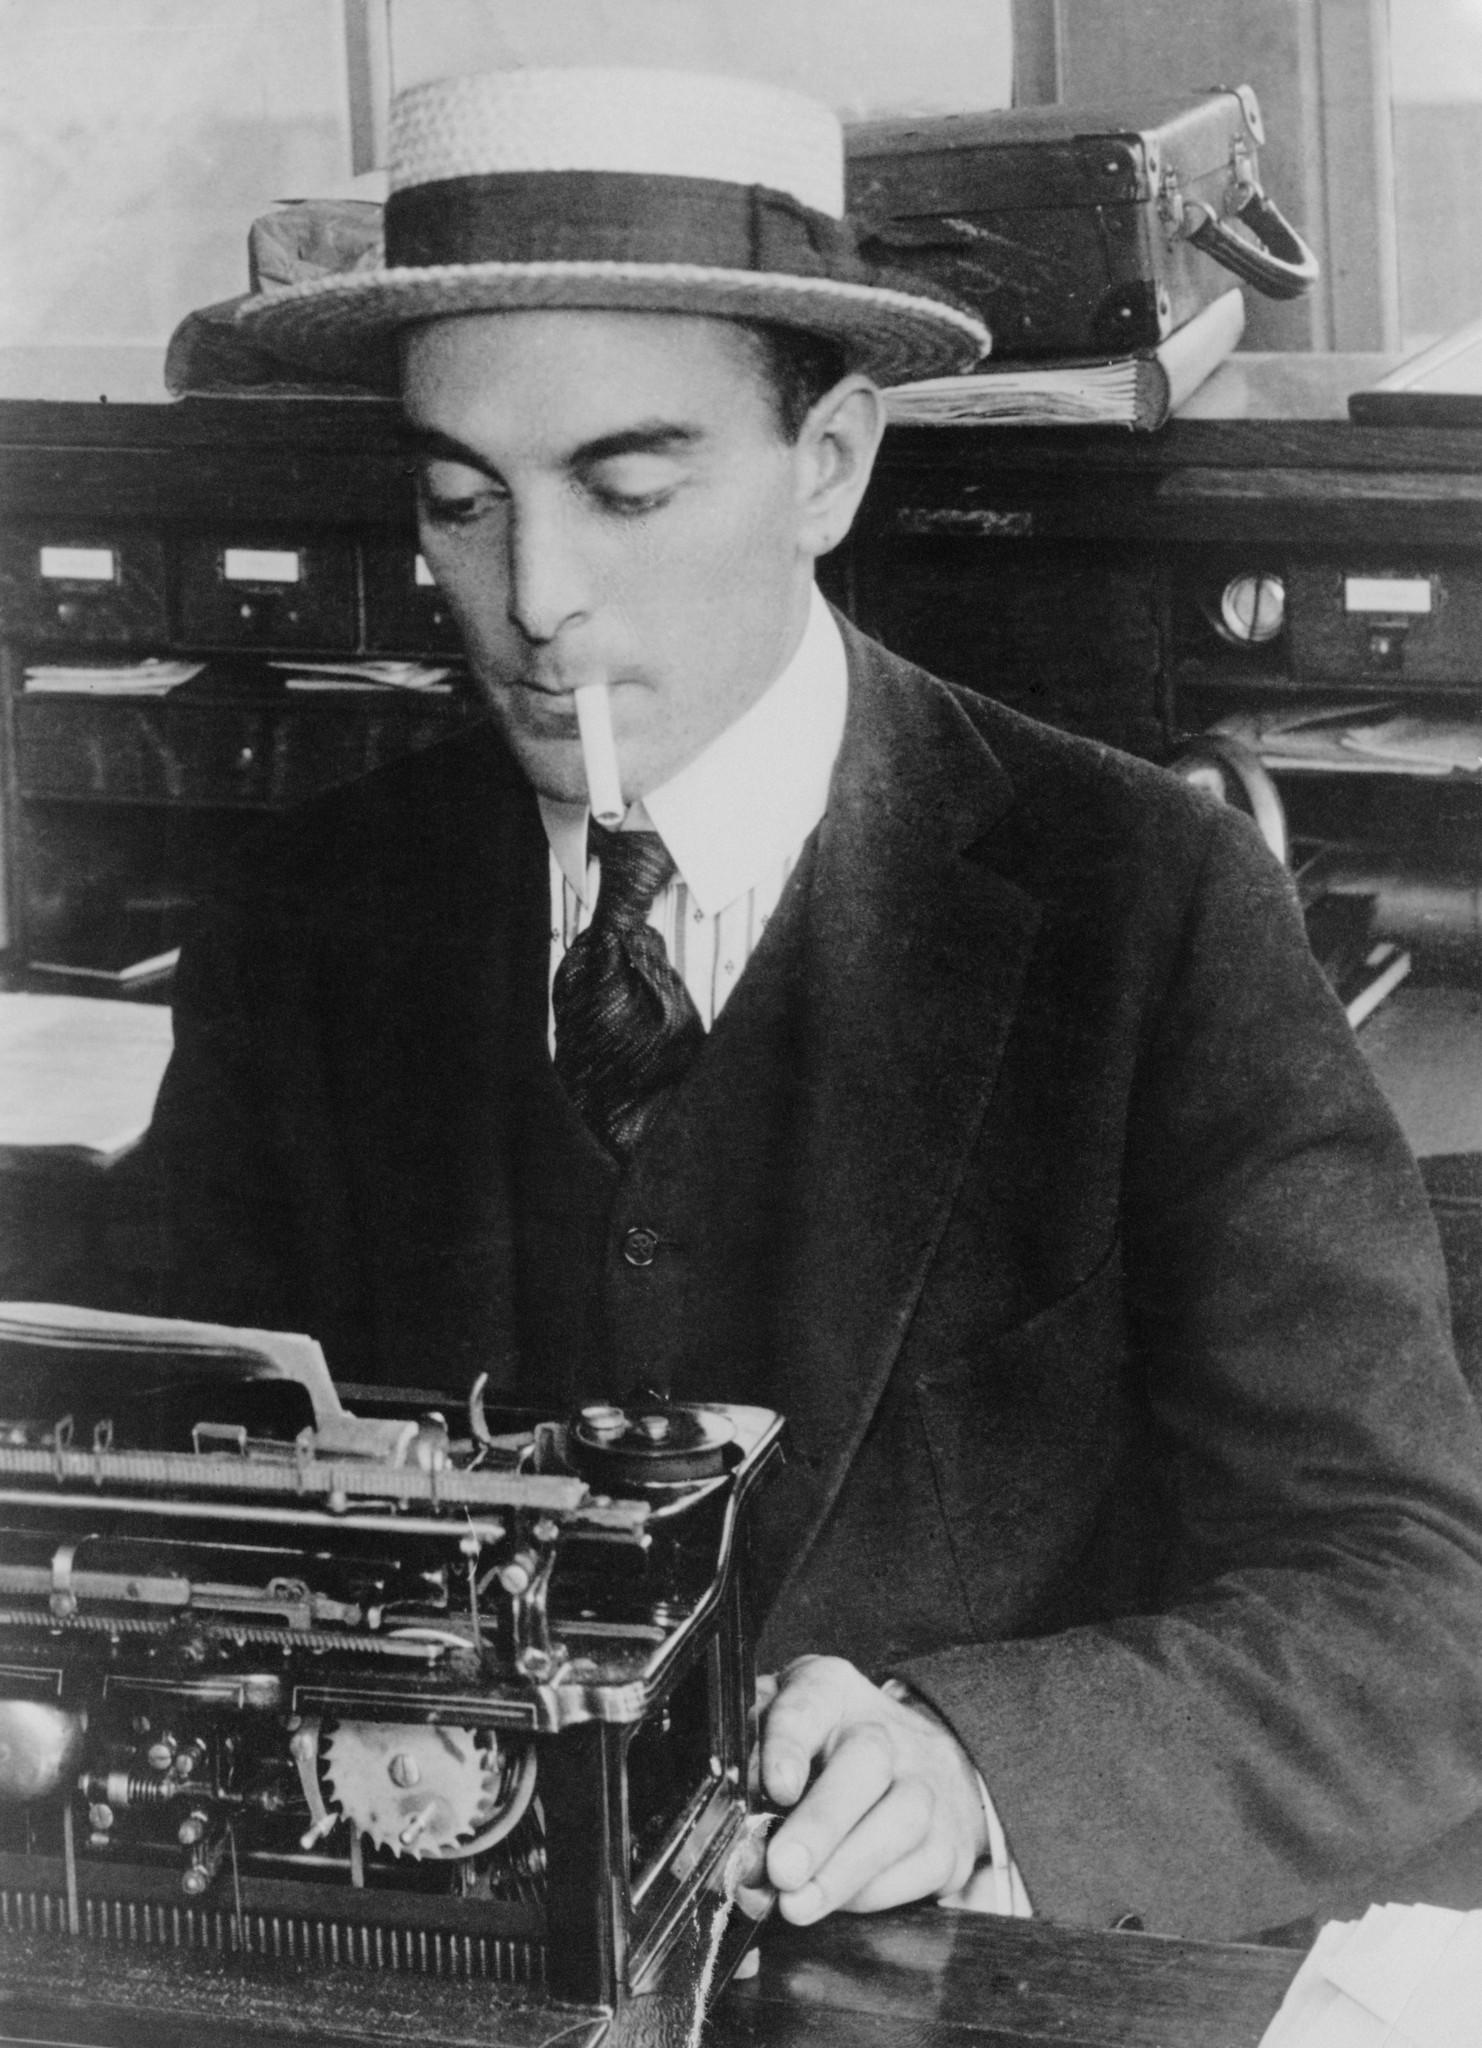 American sportswriter and humorist Ring Lardner (1885-1933) smokes a cigarette and types while sitting at a desk. He wears a straw boater.